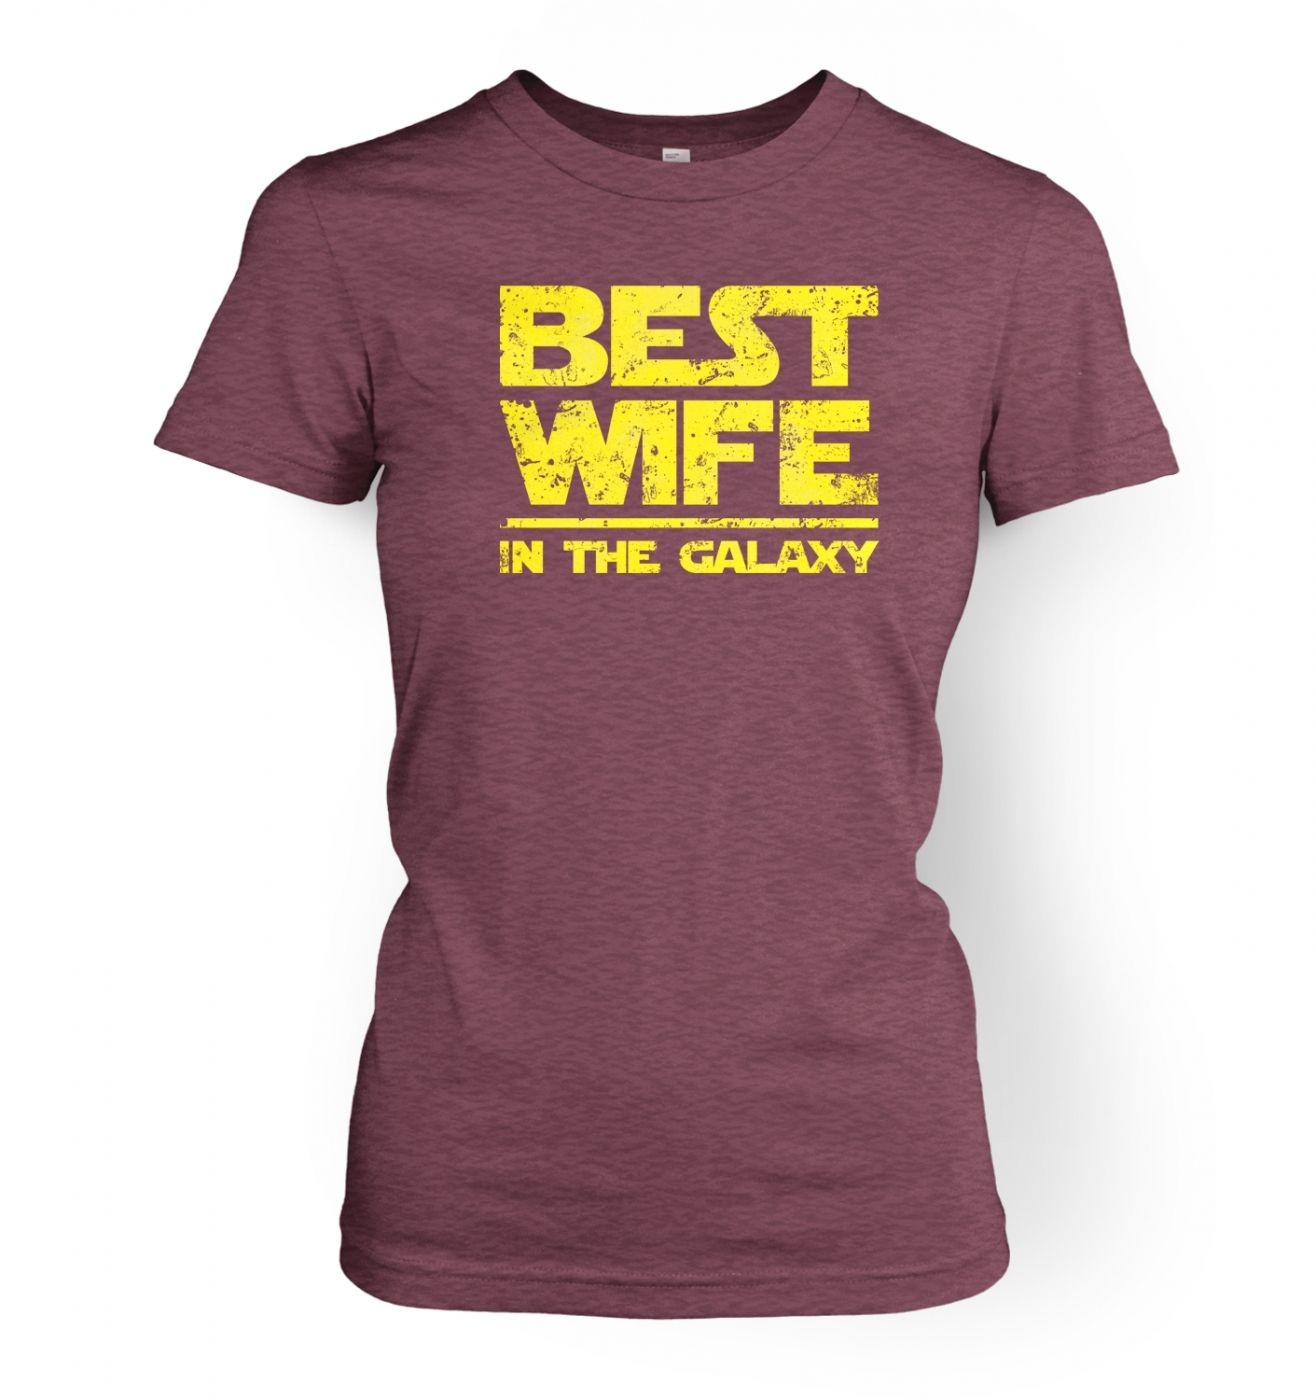 Best Wife In The Galaxy ladies' t-shirt